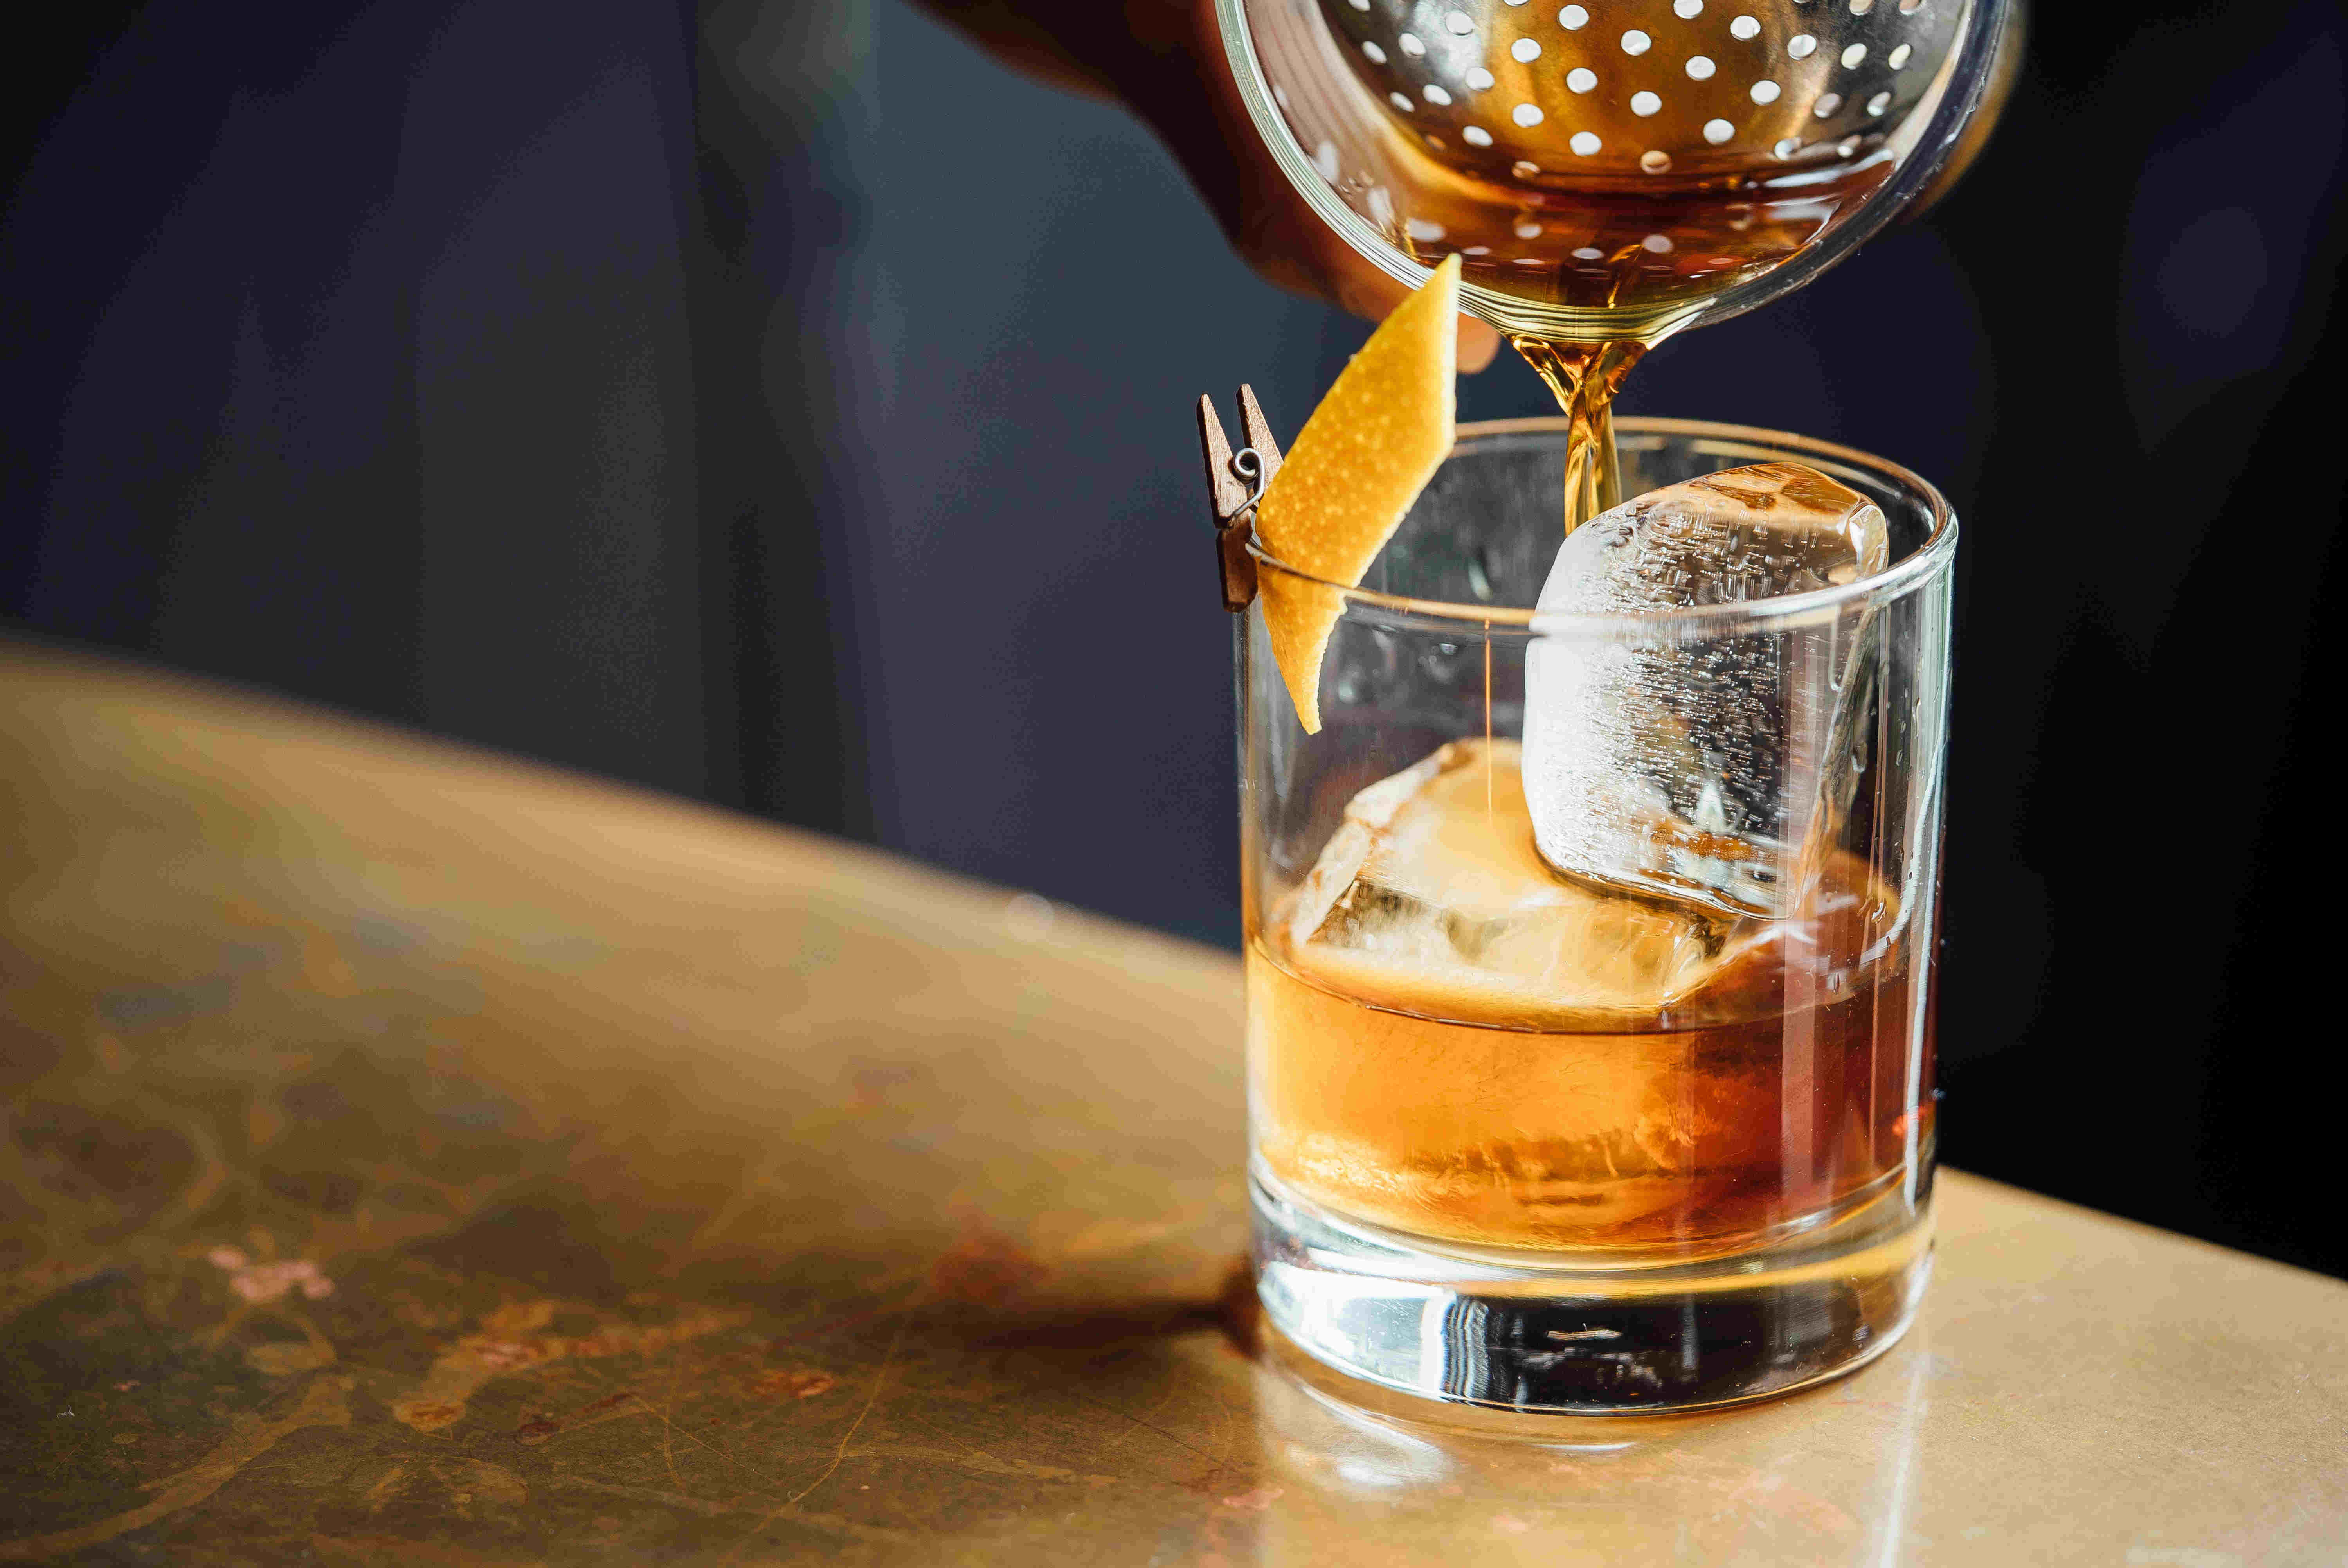 Rare Spirits: 5 Limited Edition Whiskies That Offer Interesting Alternatives To The Usual Choices